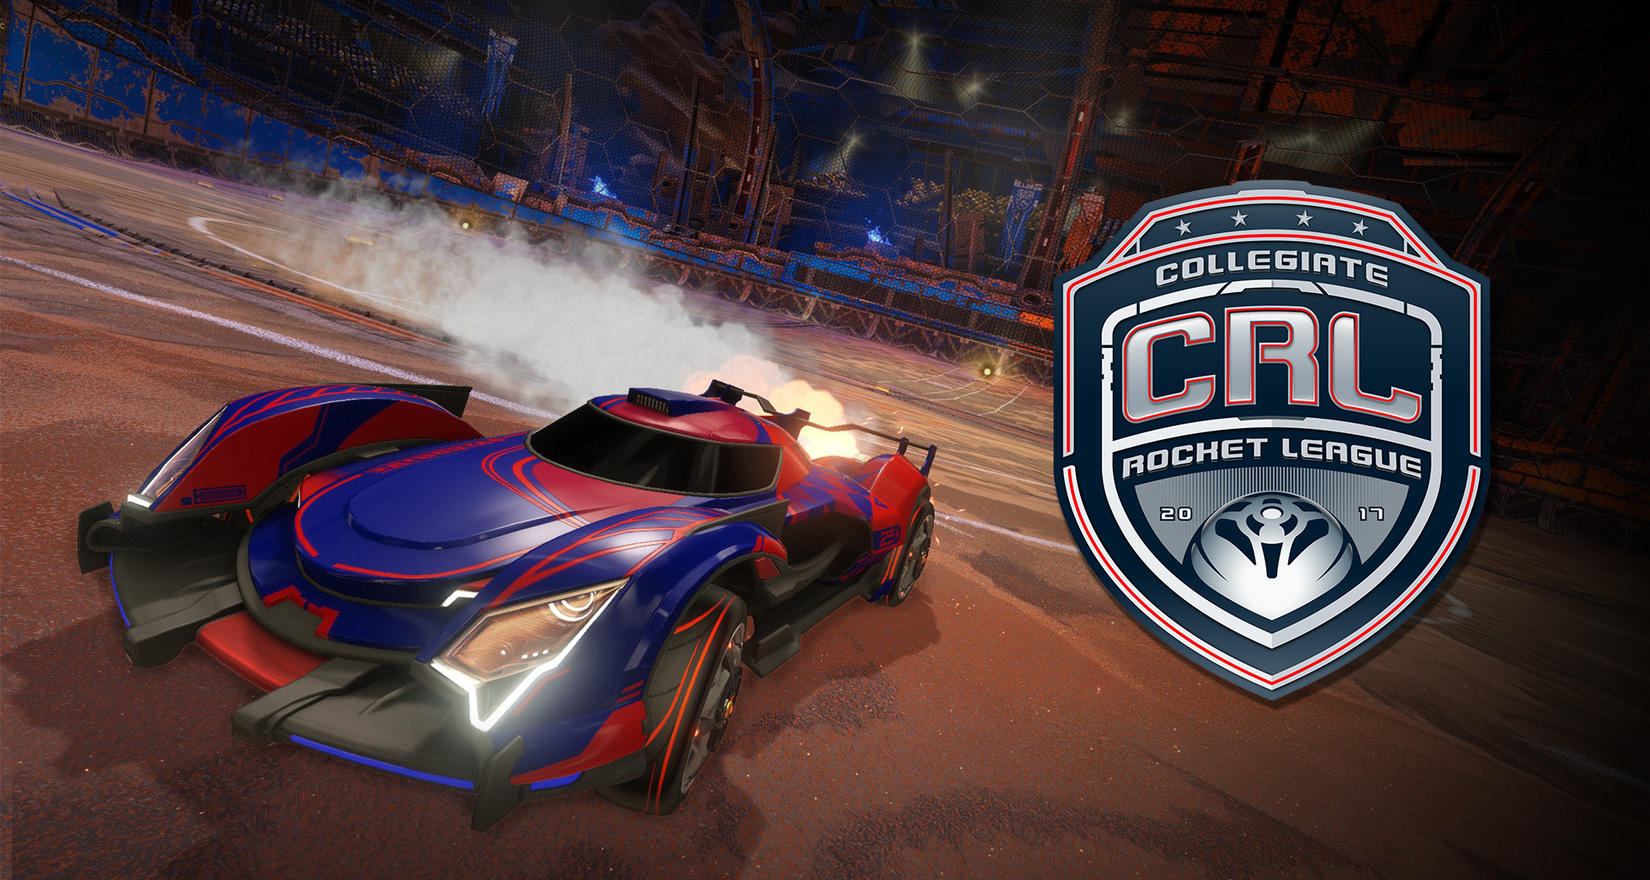 Decent at Rocket League? Maybe it can help pay for college